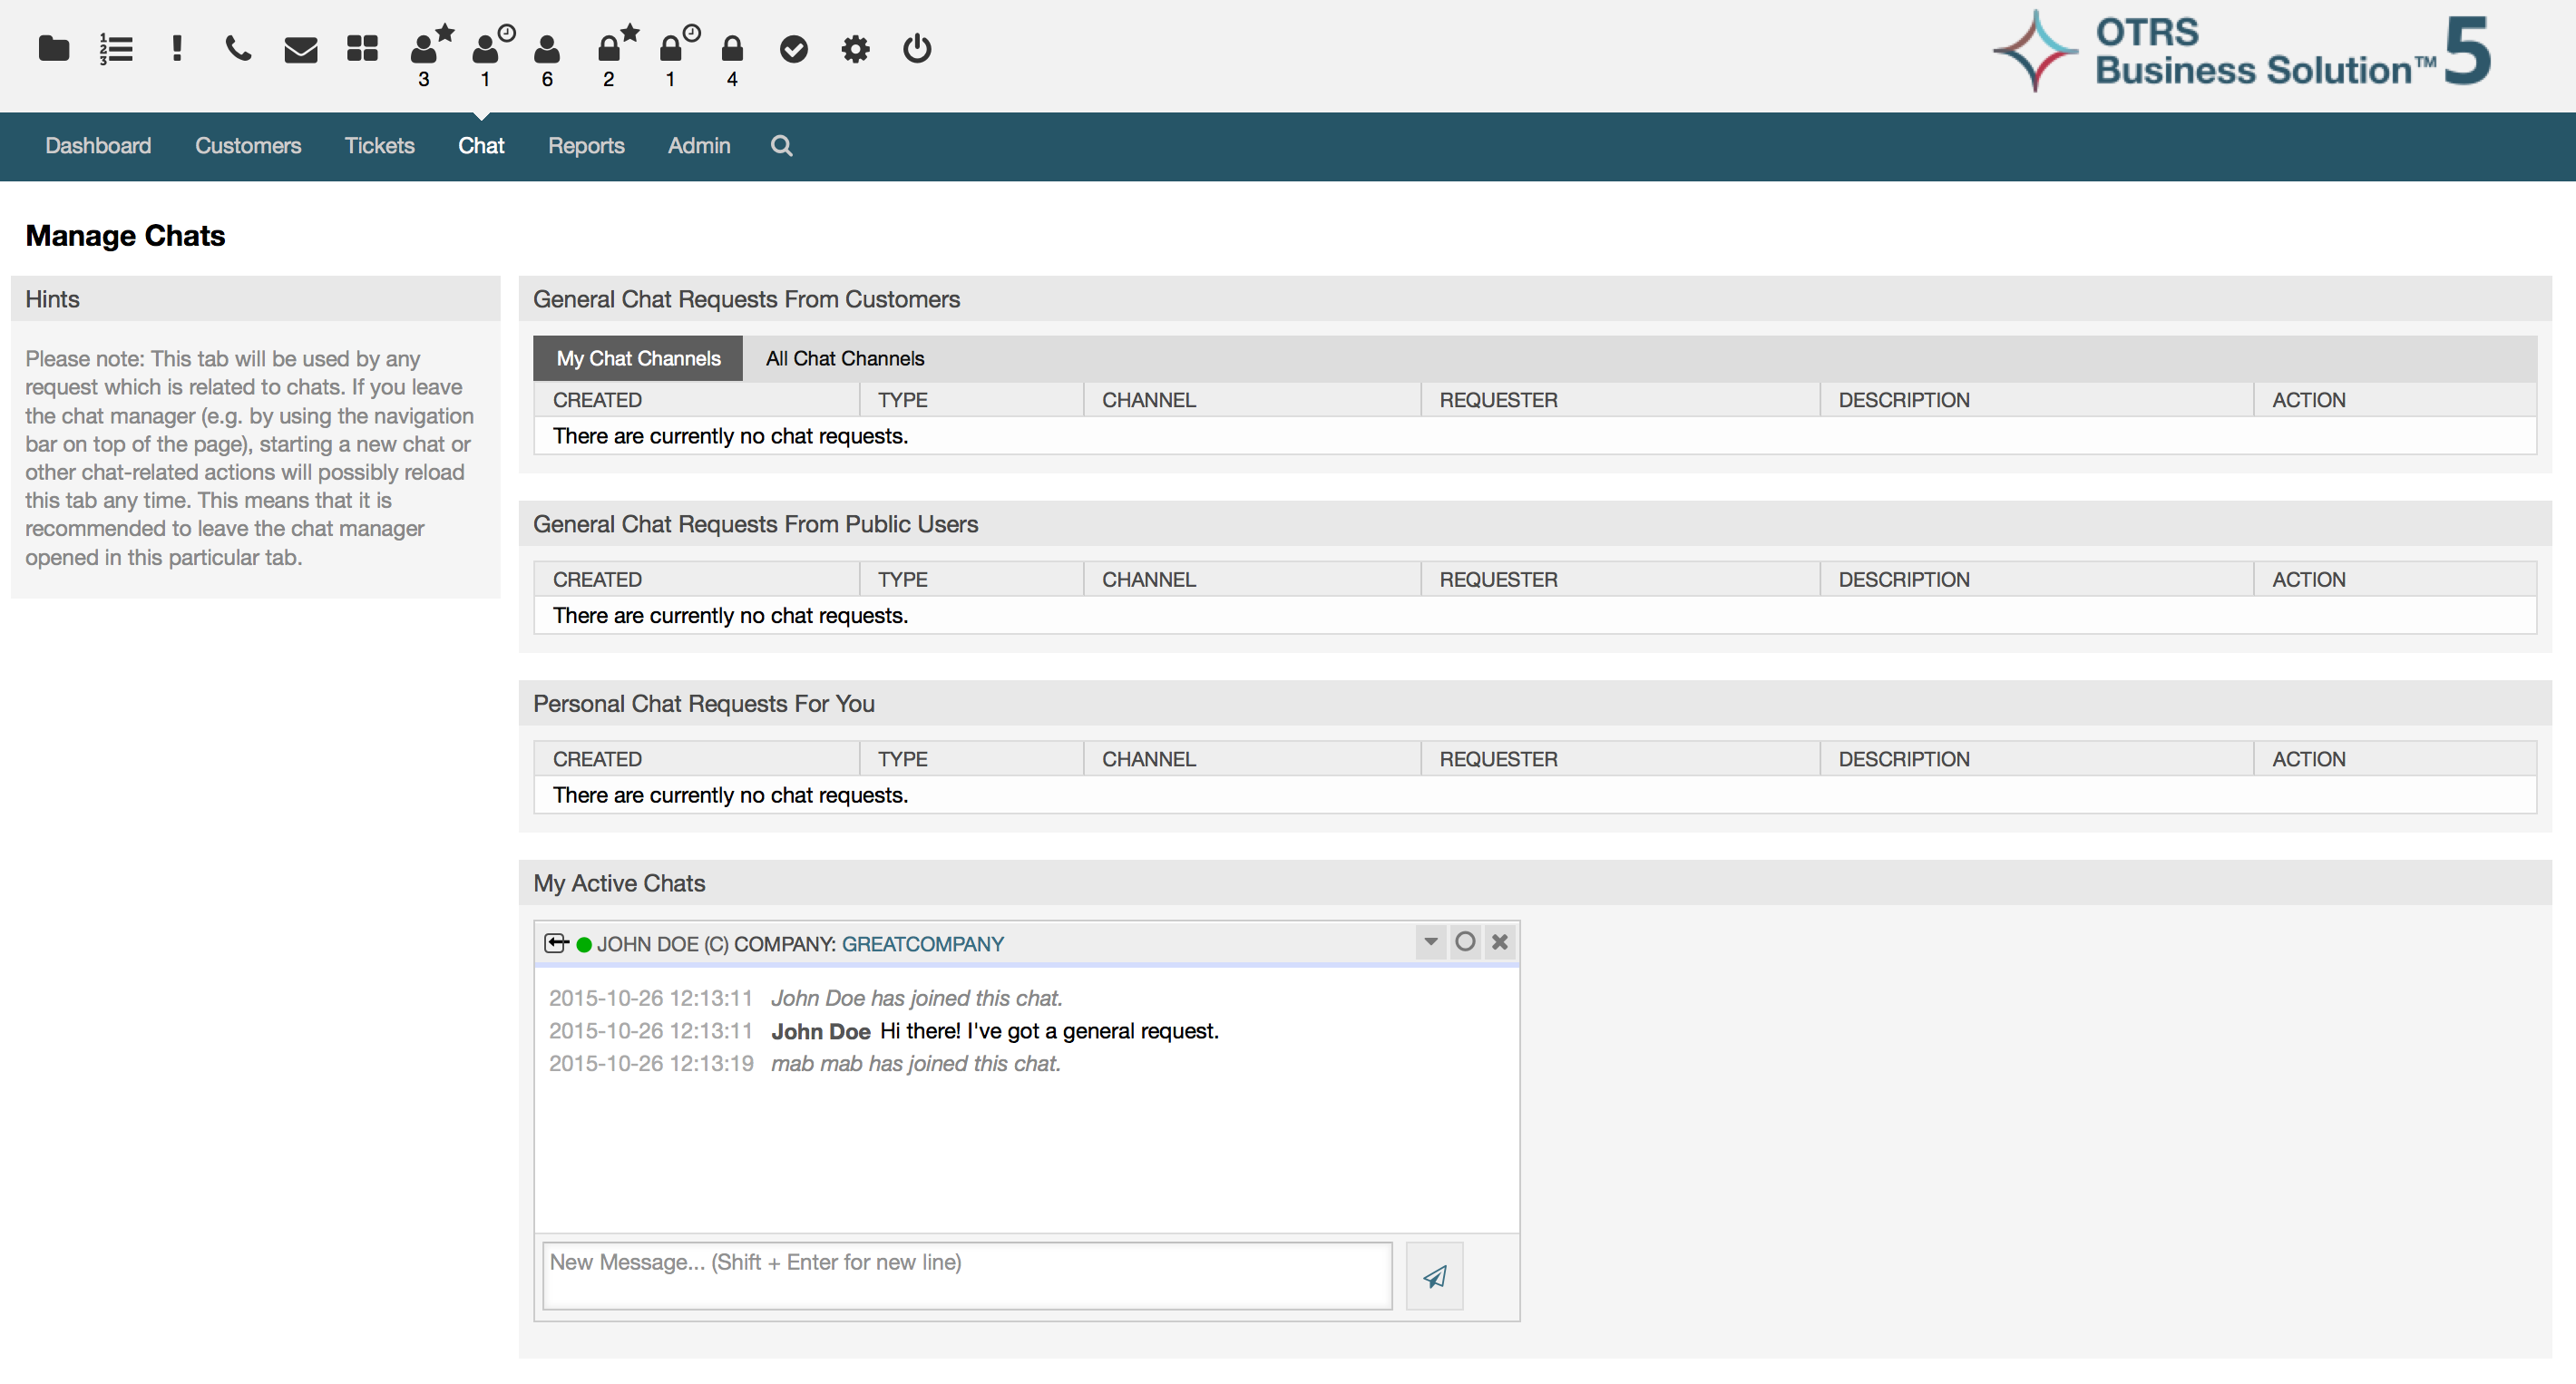 OTRS Software - OTRS managing chats